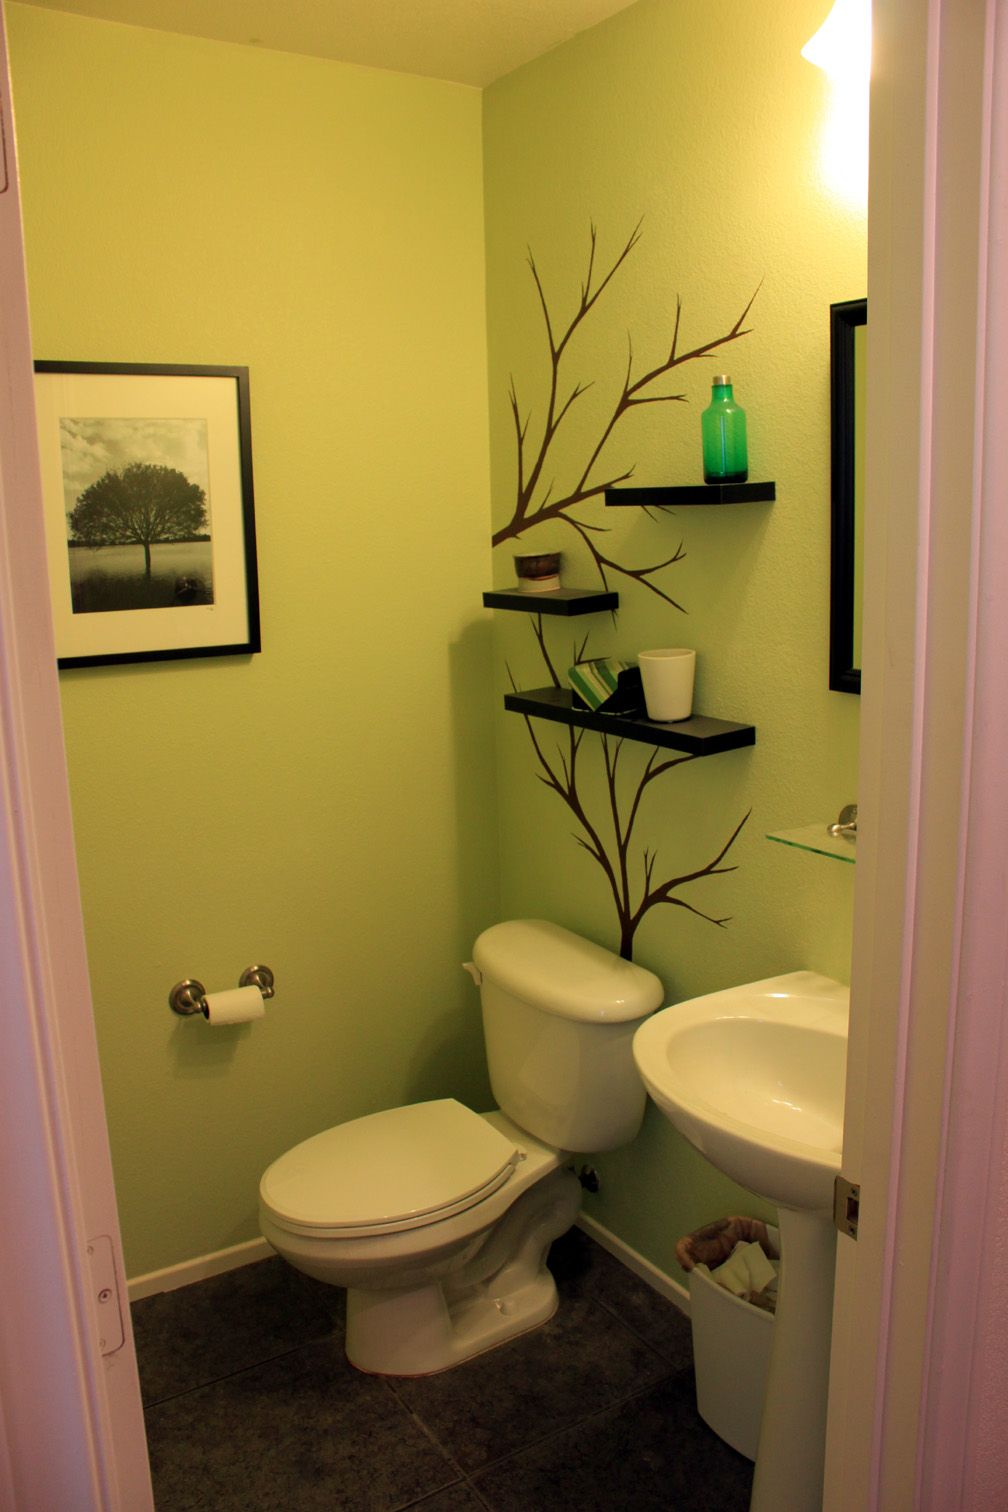 20 Ideas For Bathroom Wall Color: ... Color Scheme. Over The Weekend I